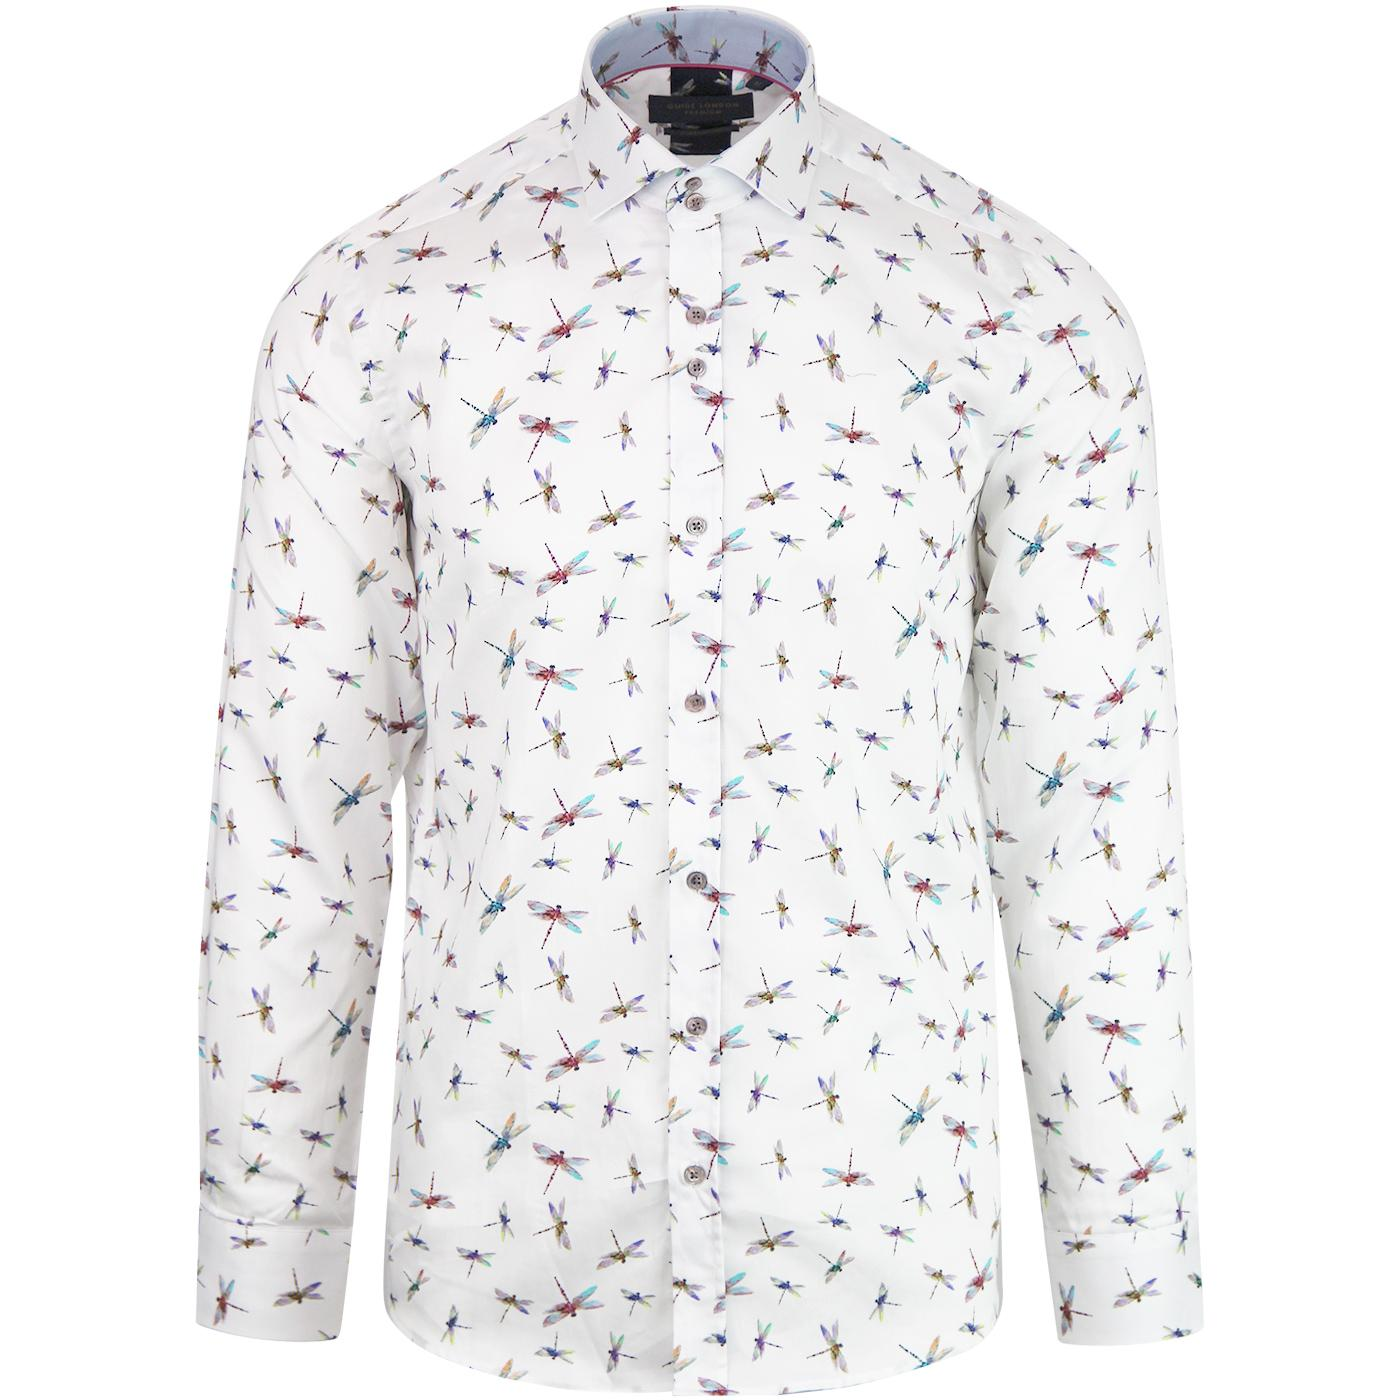 GUIDE LONDON Men's Retro Mod Dragonfly Print Shirt